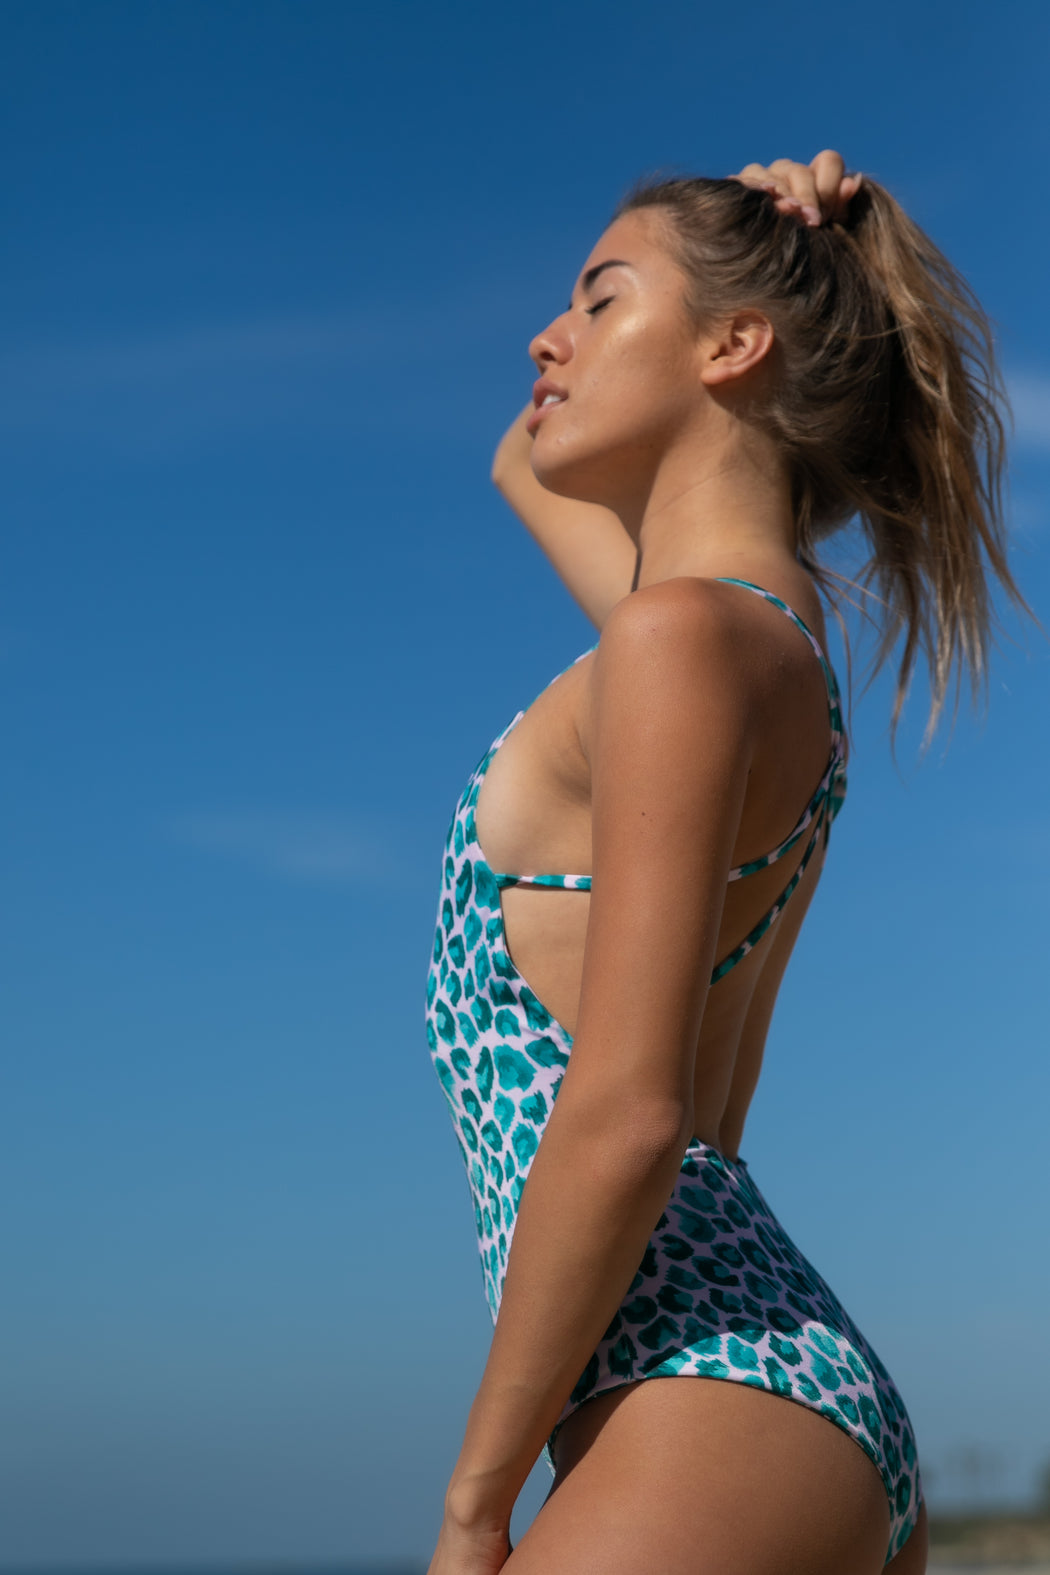 The Sunseeker Swimsuit in Leopard